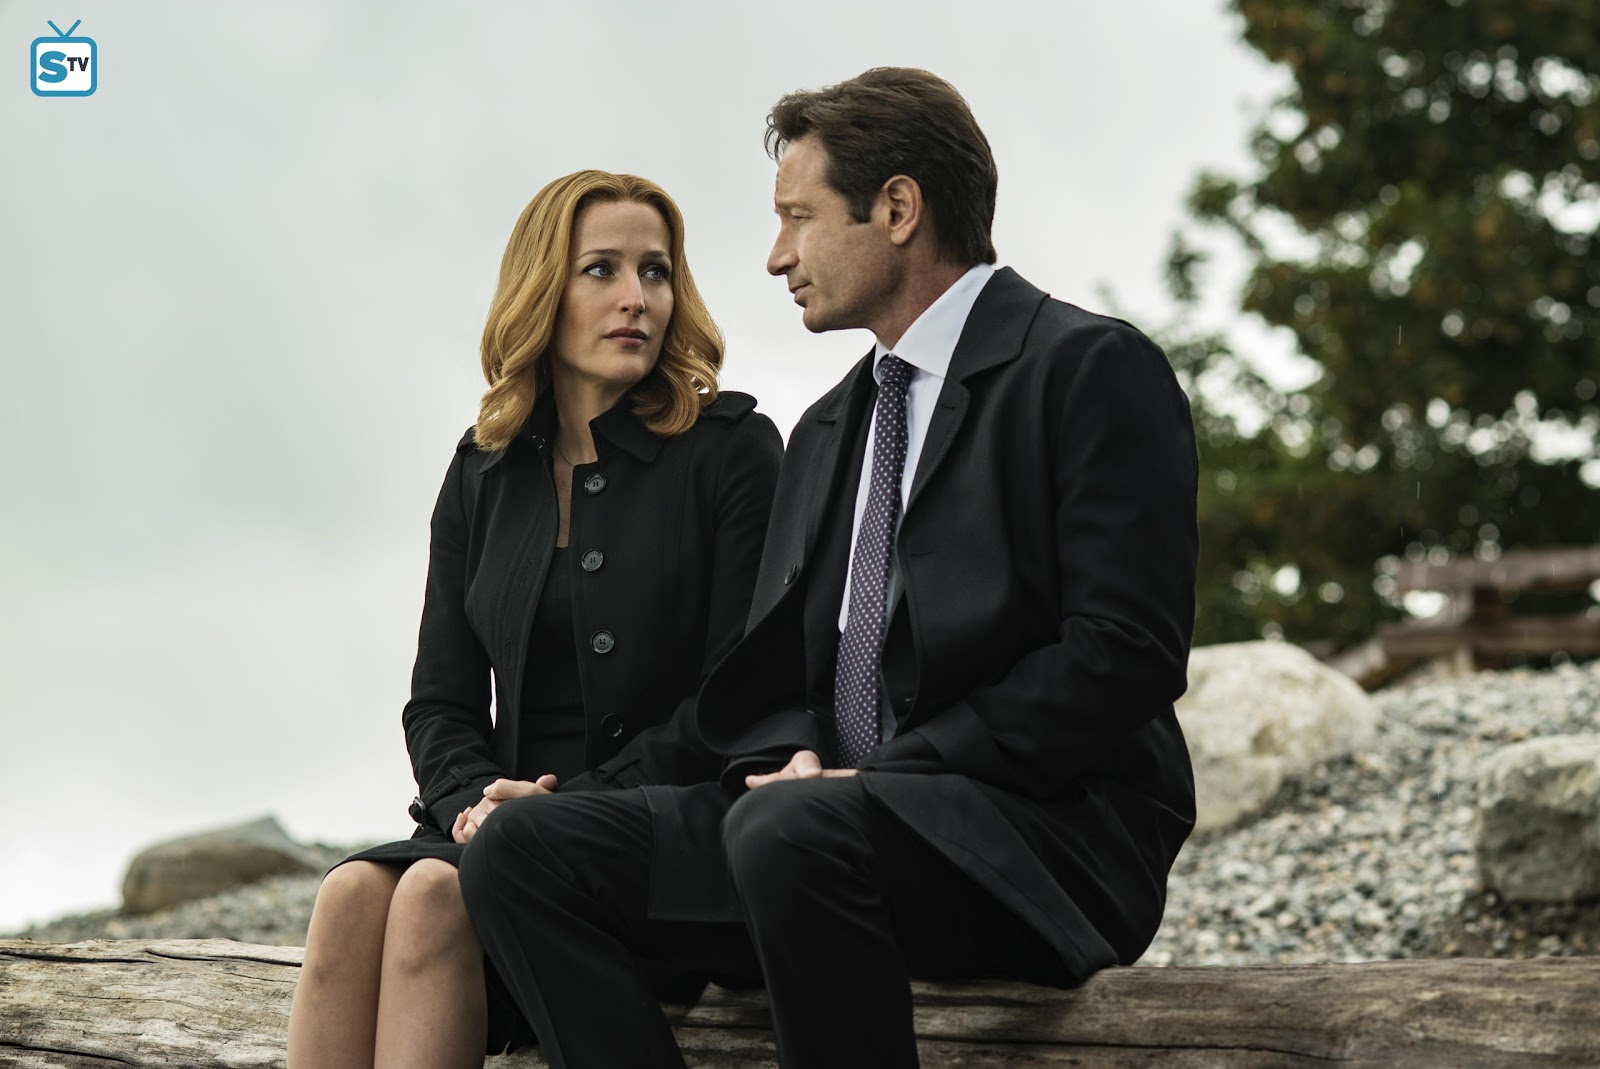 The X-Files - Episode 10.04 - Home Again - Sneak Peeks, Promotional Photos & Promo *Updated*